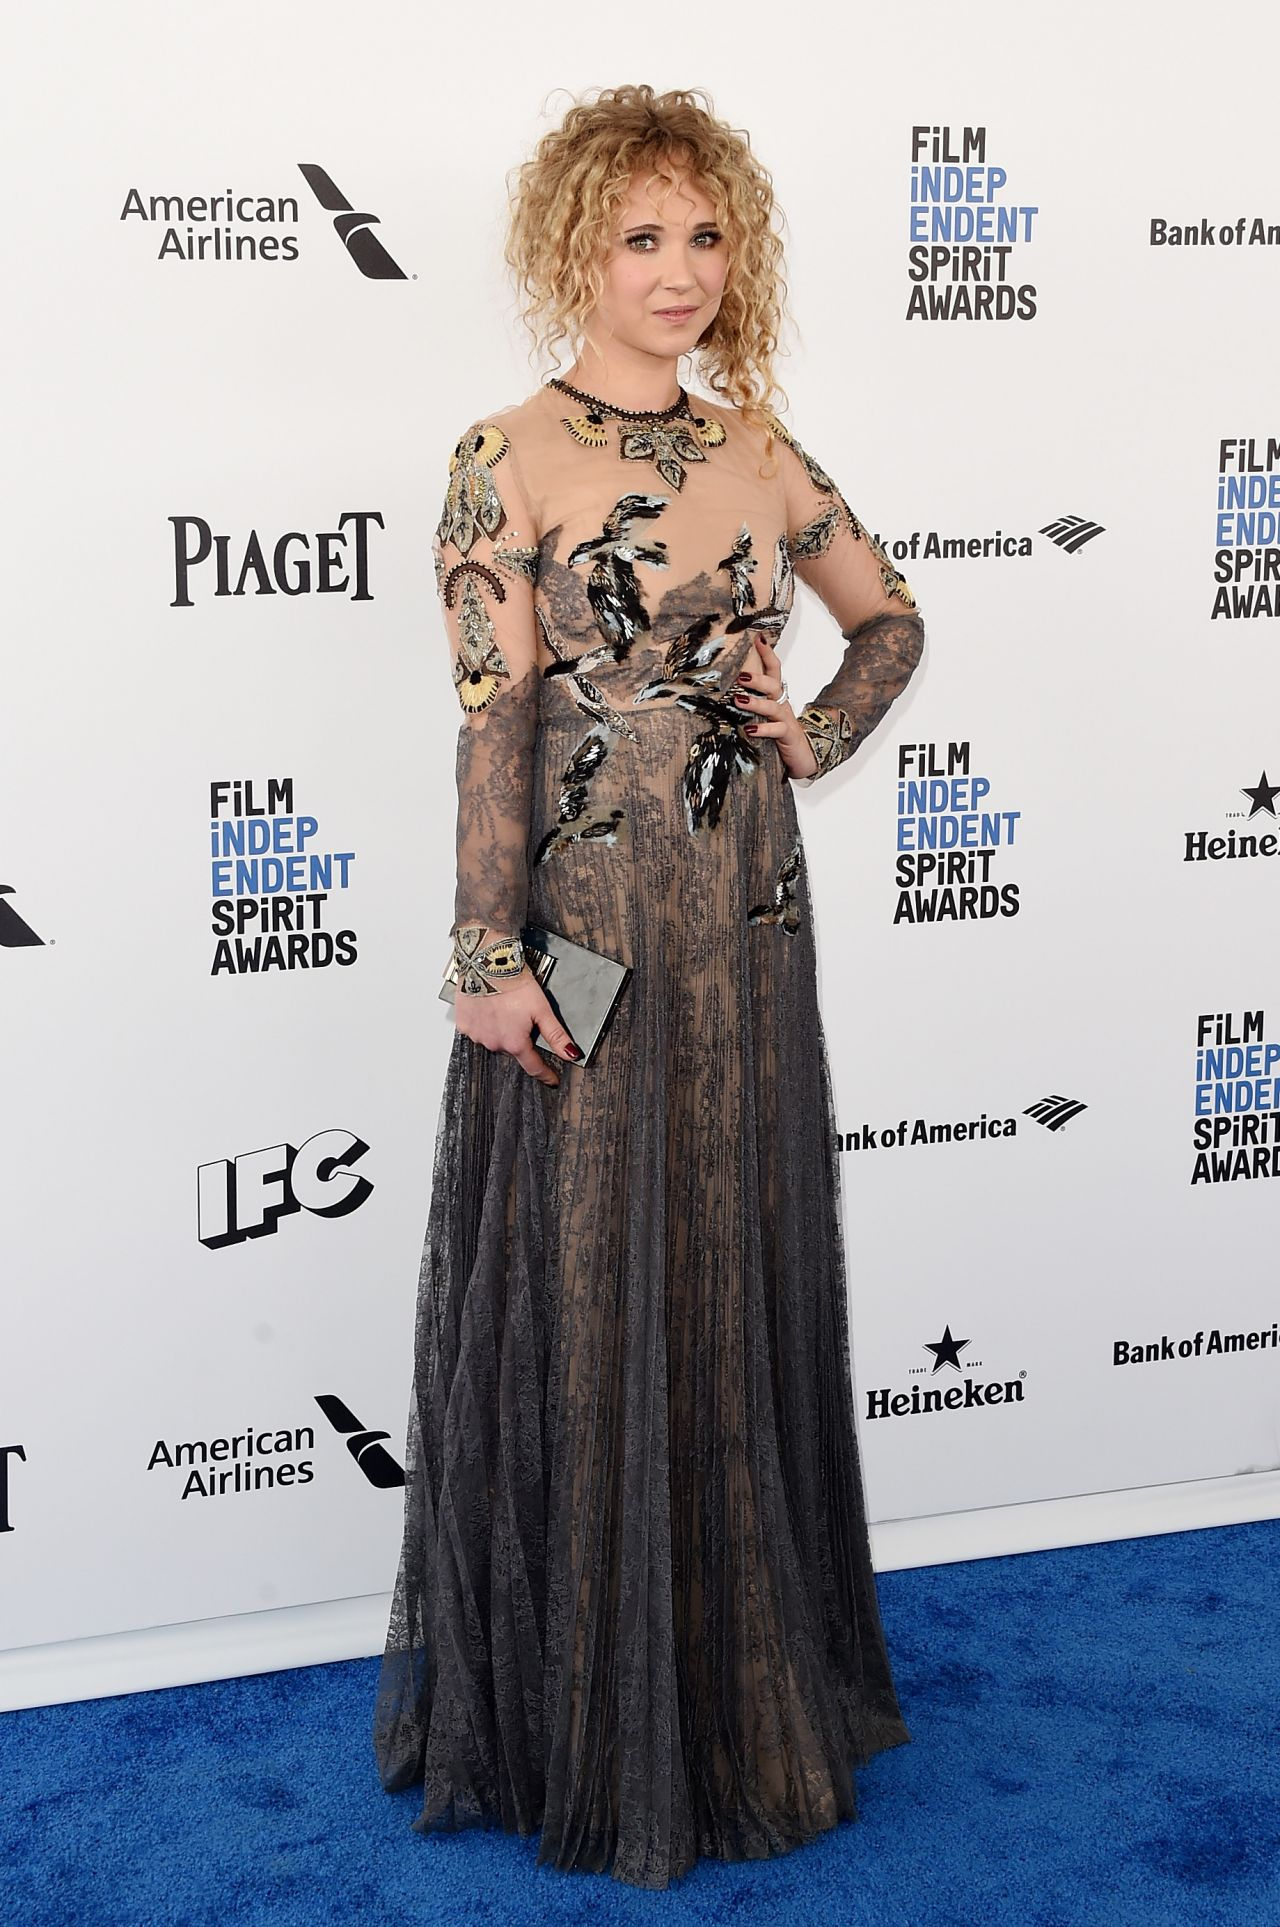 juno-temple-2016-film-independent-spirit-awards-in-santa-monica-ca-2-1